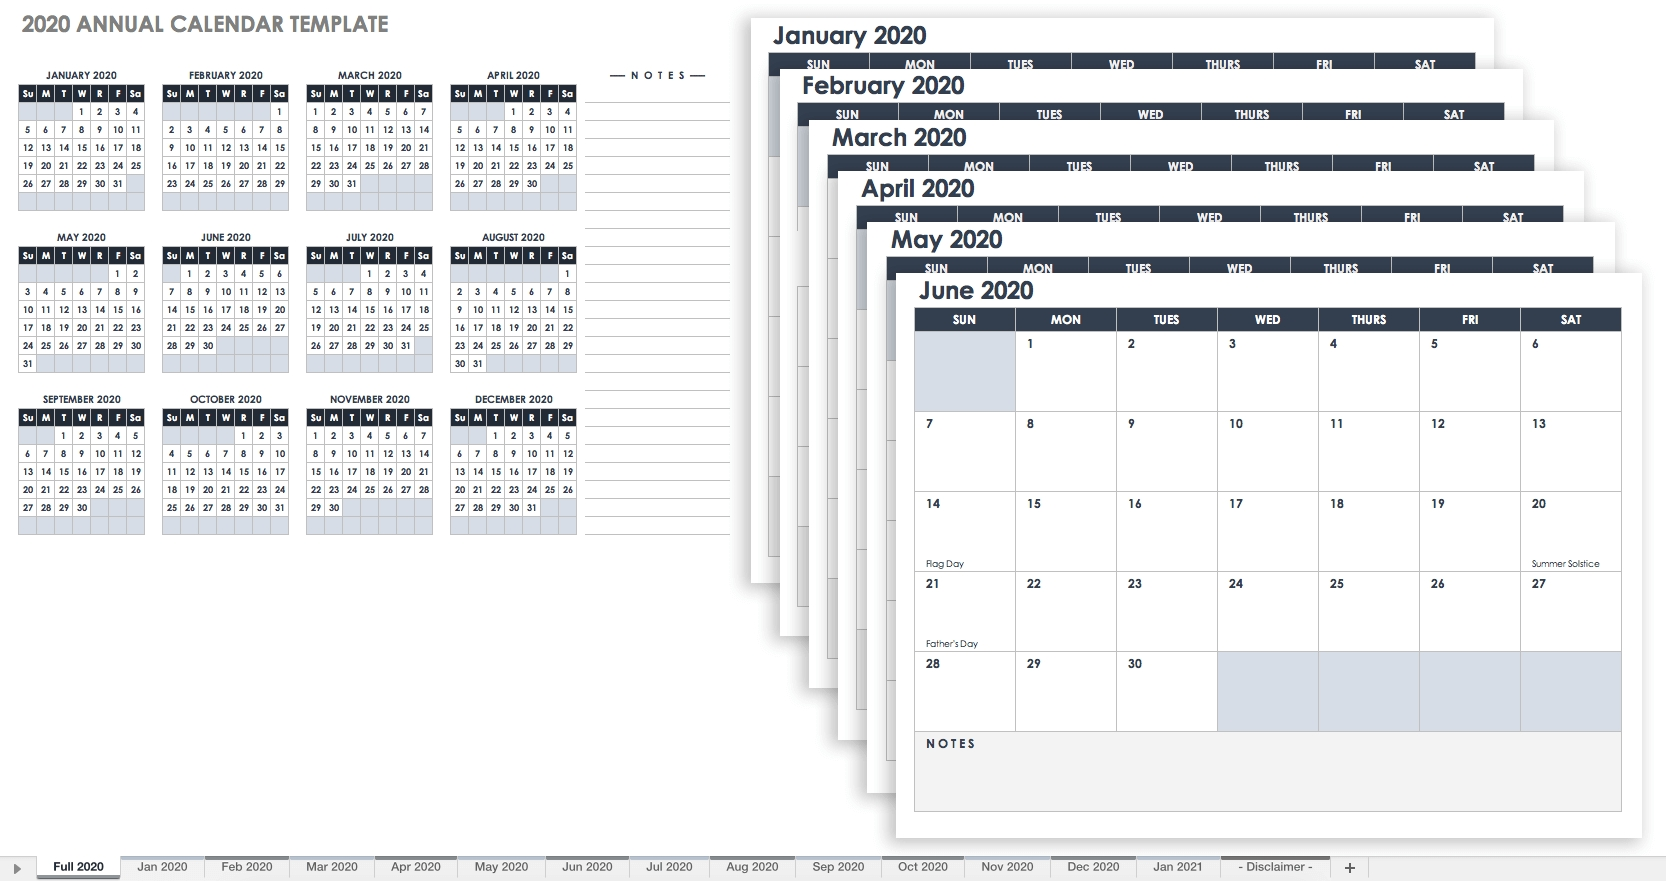 Free Blank Calendar Templates - Smartsheet throughout Monthly Printable Calendars 2020 Half Page